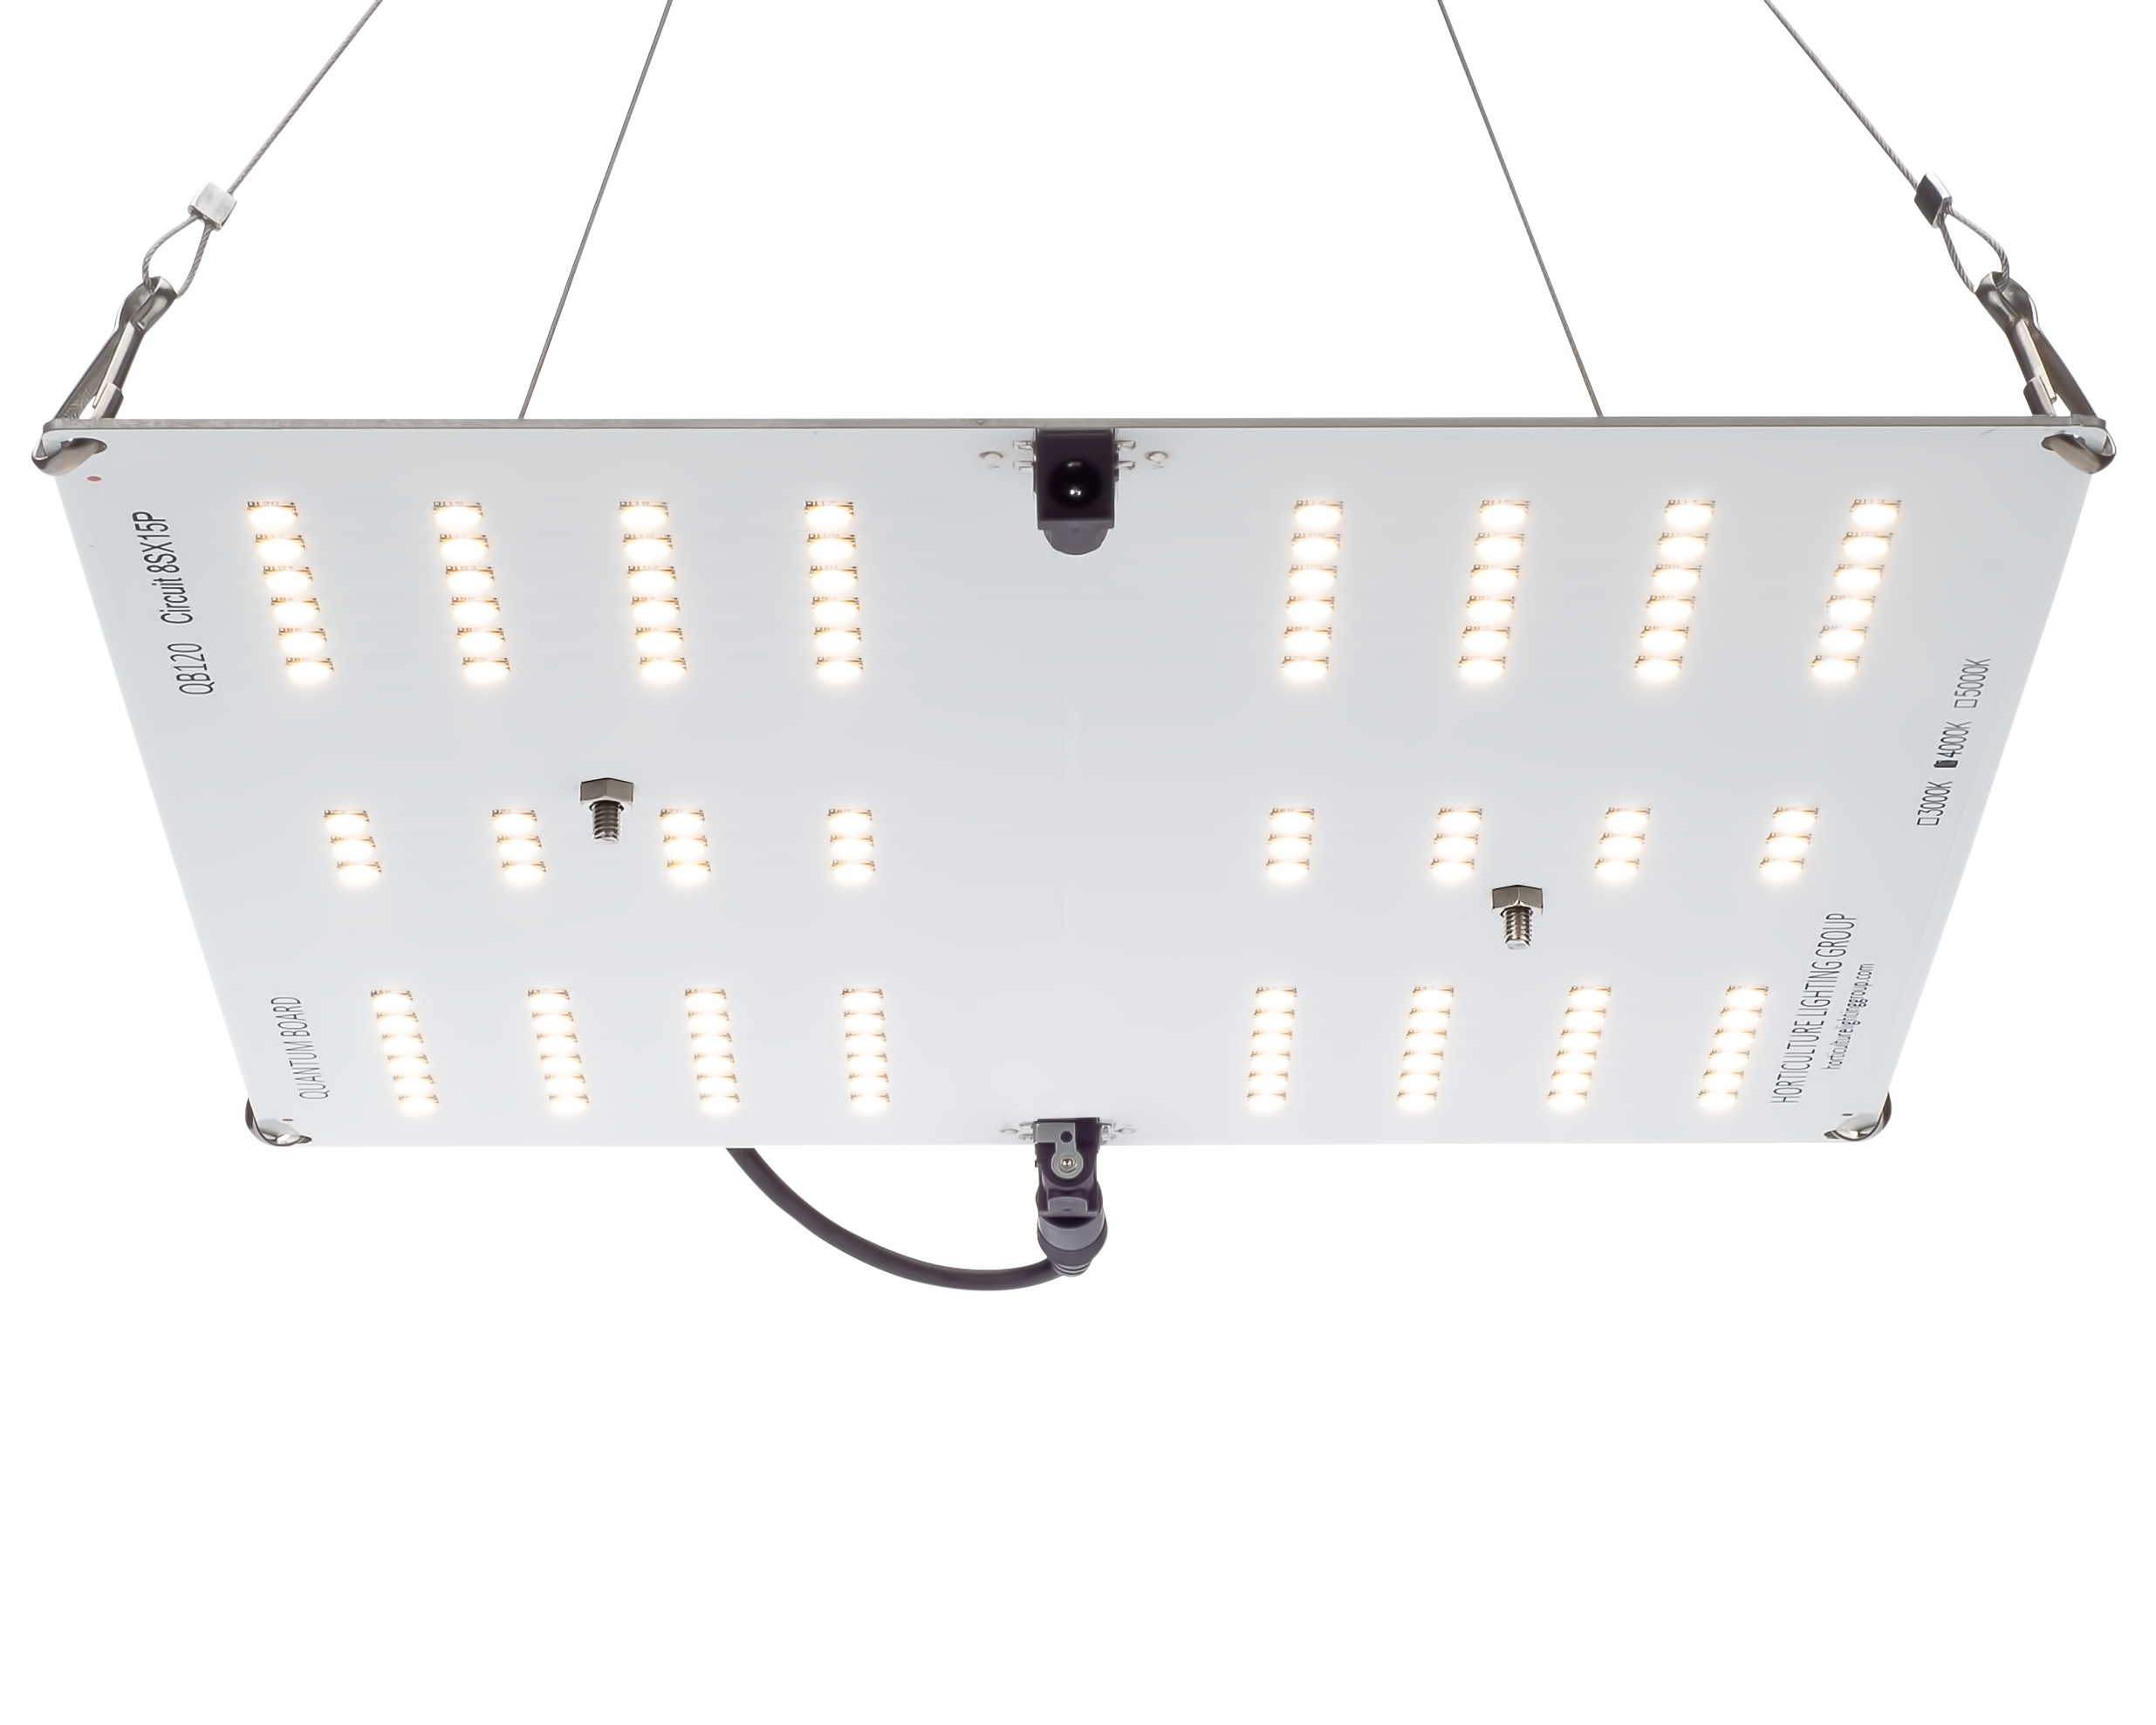 Horticulture Lighting Group HLG 65 V2 LED - 65W 1 Quantum Boards Horticulture Lighting Group's HLG 65 V2 Lamp is designed for vegging, clones, supplement light or a small plant. This lamp uses our custom designed High efficiency white light Quantum Boards. With a total of 120 pcs Samsung LM301B LED's, this fixture produces 10,000 Lumens with just 65 Watts of power. Equivalent to 150W T5 or 200W CFL output or 150W metal halide. Comes in 4000K spectrum. Not Daisy Chainable. TOP FEATURES High efficiency QB120 Quantum Board White Light Full Spectrum 4000K. Ideal for veg and flowering in small spaces Reliable passive cooled design Better canopy light penetration with diffused light Non-Dimmable Meanwell Power Supply included with NEMA 1-15p plug DIMMINGDoes not include dimming. Compatible with DC LED Rotary and Remote PWM dimmer that are rated 24VDC 2.5A or higher. SPECIFICATIONS Power 65 Watts Voltage Range 90-264 VAC LED 120 pcs Samsung LM301B Flowering Footprint 2'X1' or 1'X2' Veg Footprint 2'X2' System Efficiency 165 Lm/W System PPF Efficacy 2.35 μmol/joule Total output 152 PPF Dimensions 11  x 9.5